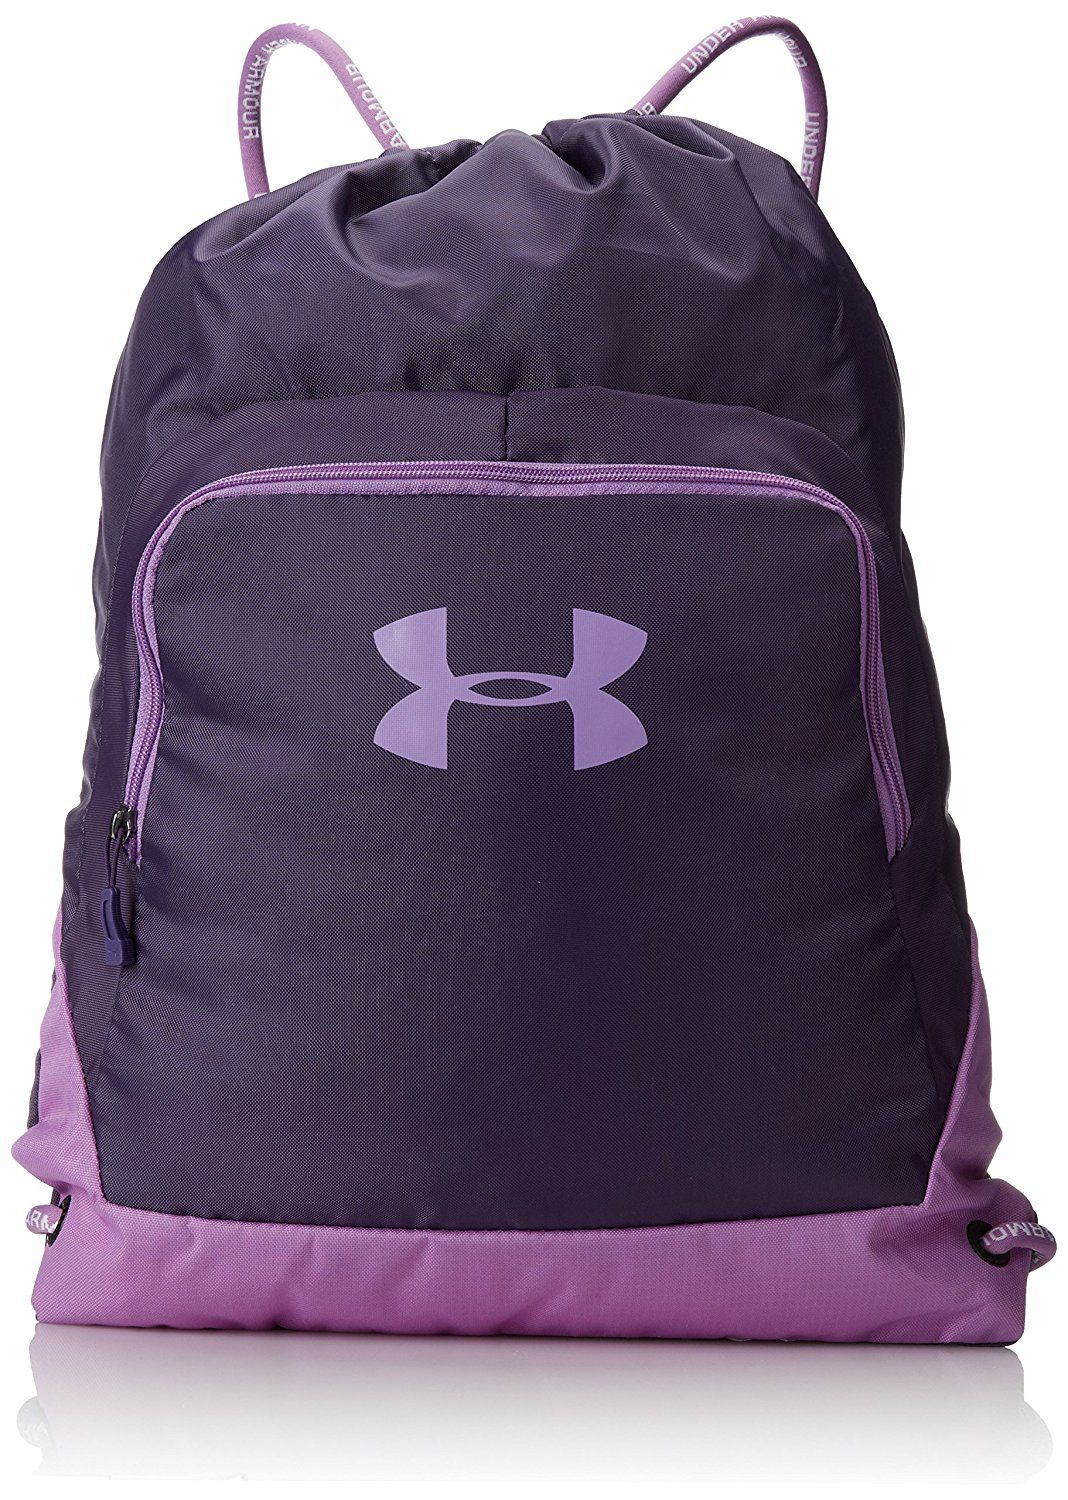 7ffb1c9a61c0 Amazon.com  Under Armour Undeniable Sackpack